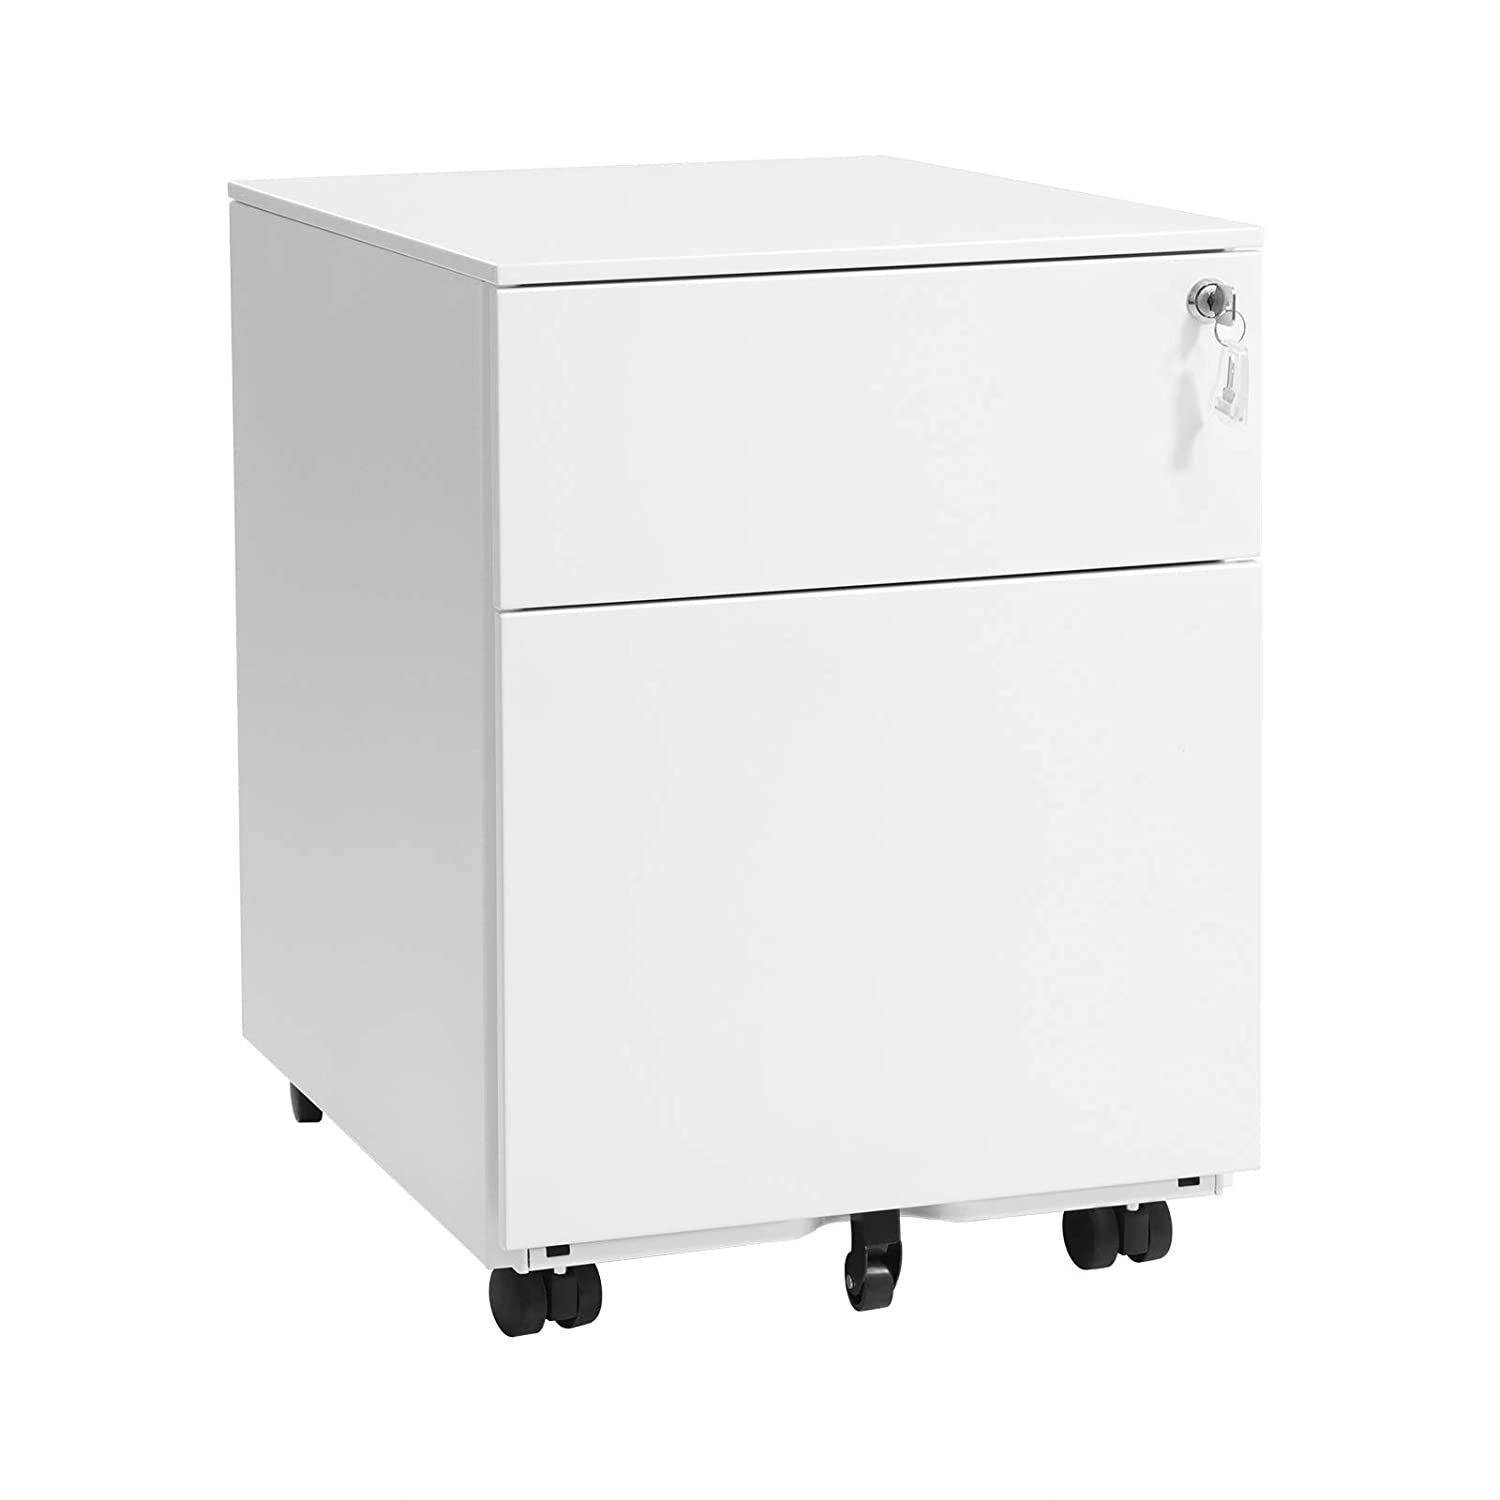 SONGMICS Mobile File Cabinet with 2 Drawers Lockable Steel Pedestal with Suspension File Hanging Rails,Fully Assembled Except Casters, Black OFC50BK